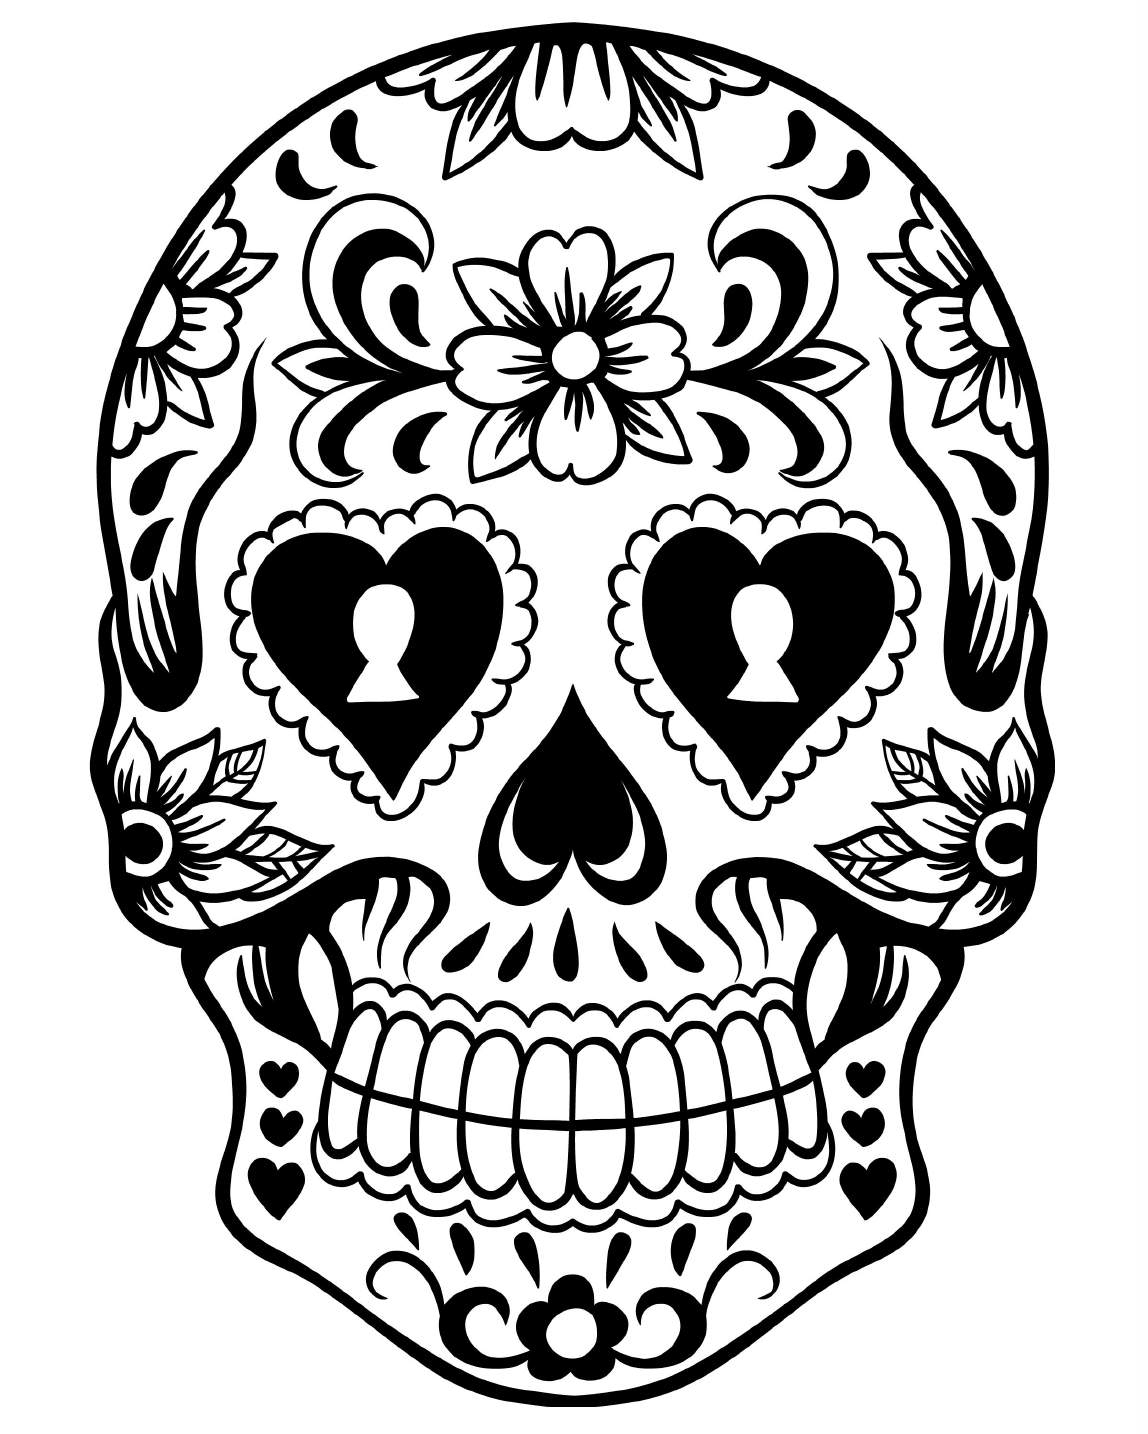 day of dead coloring pages amelia day of the dead dottie gleason skull coloring pages day of dead coloring